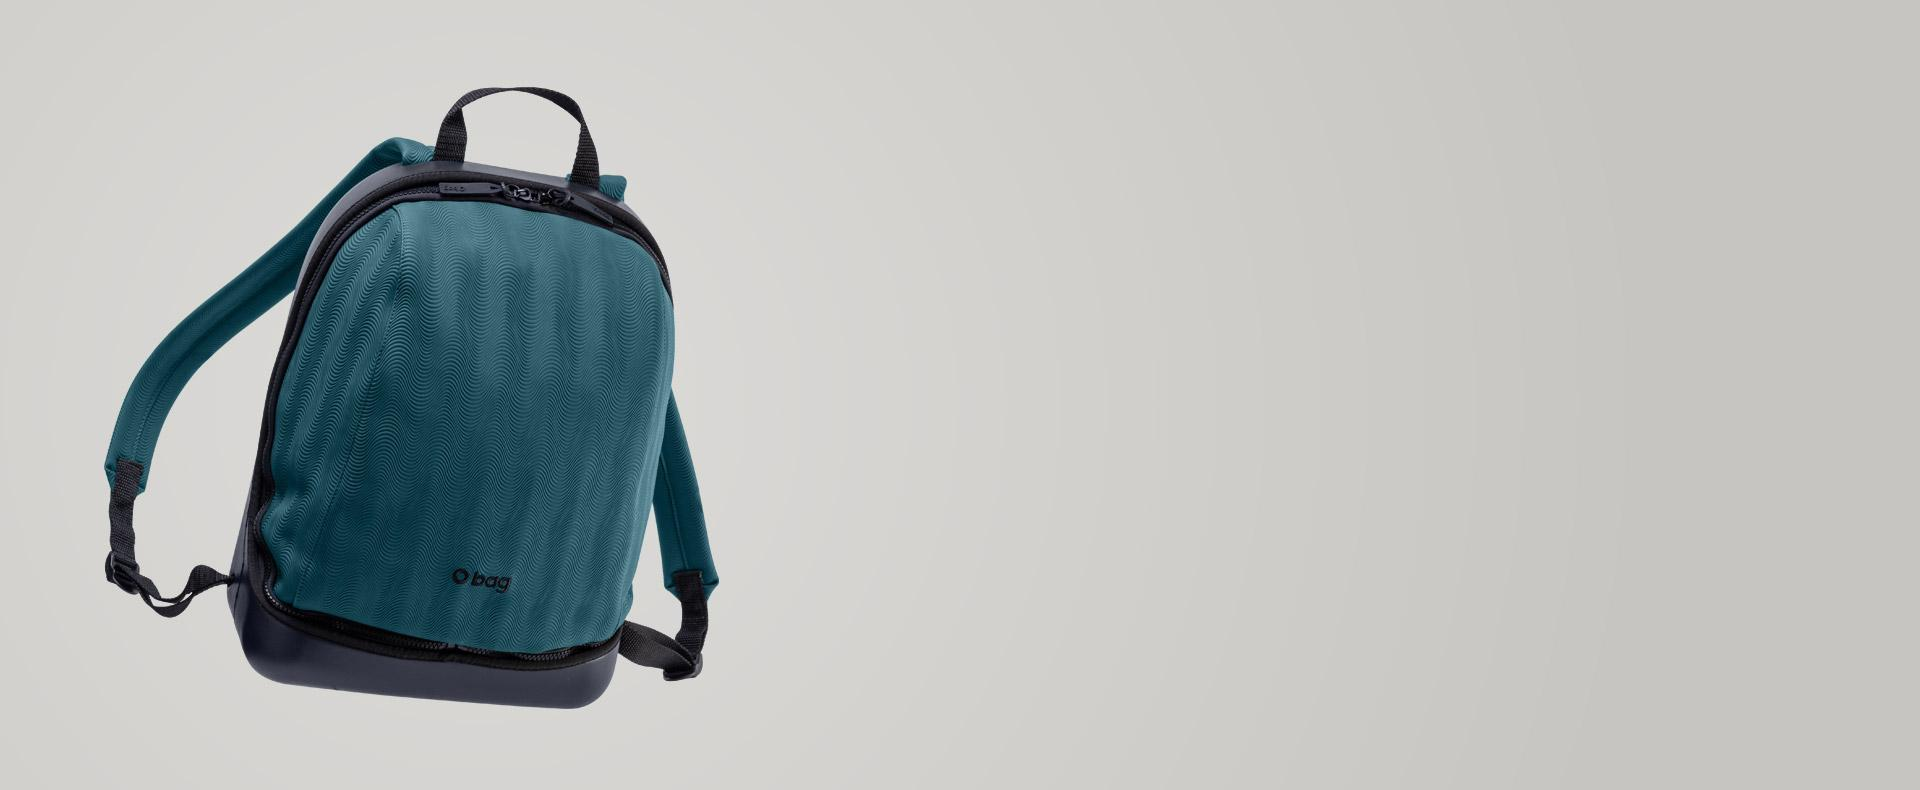 finest selection good service lovely luster One   O bag   Make and customize your own backpack!